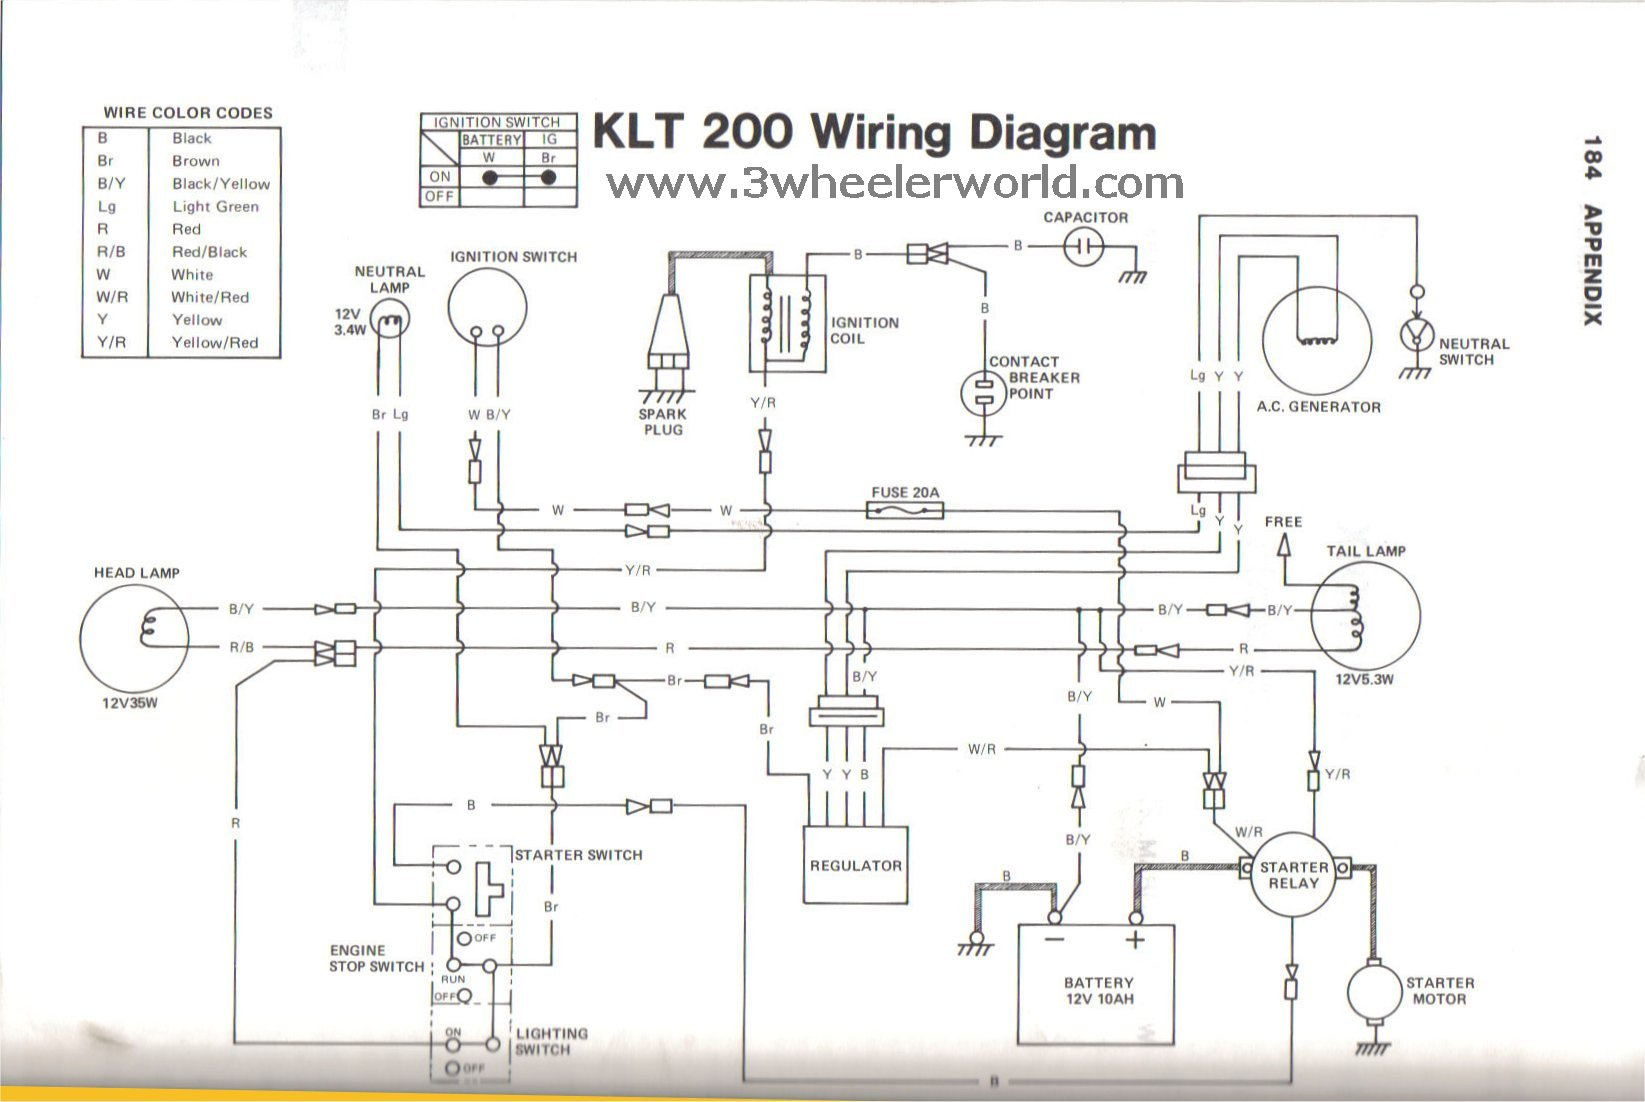 Finally diagram for all 1981 200 klt owners [Archive] - 3WHeeLeR WoRLD